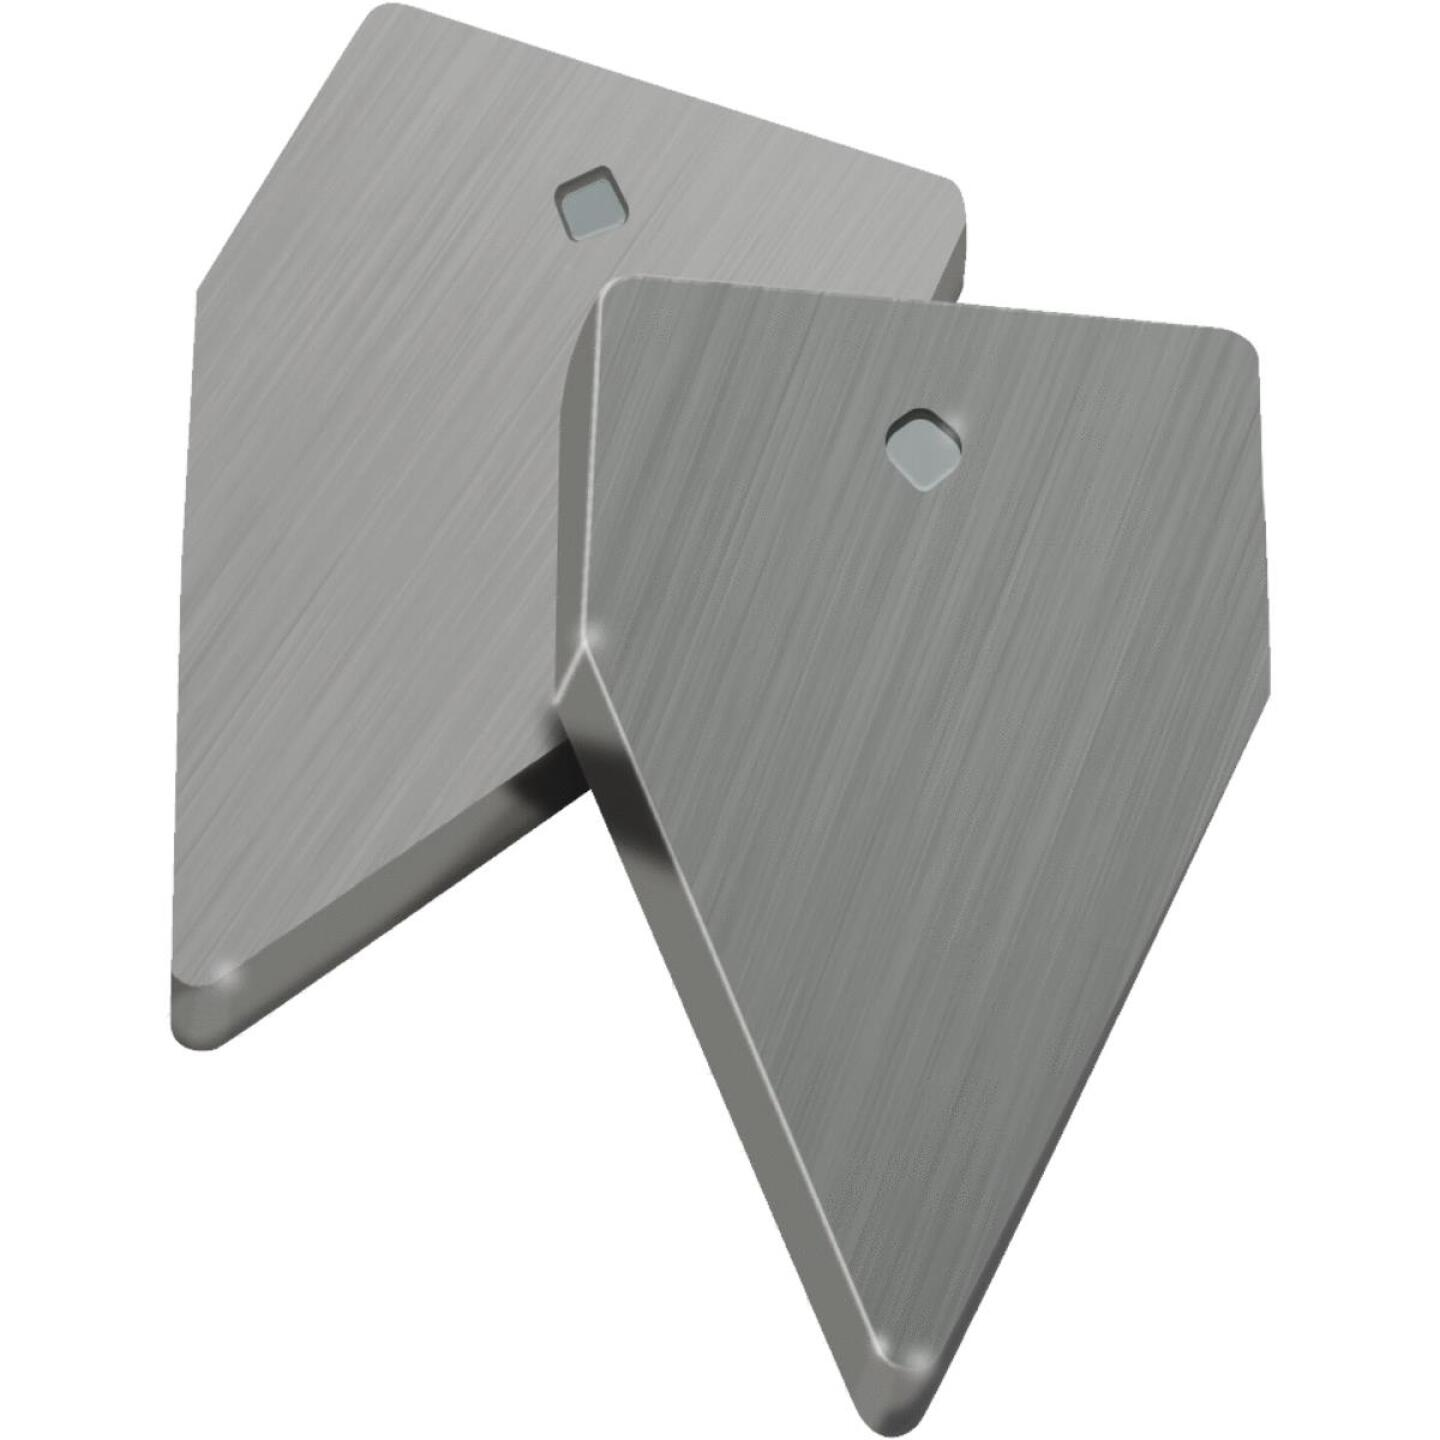 AccuSharp Tungsten Carbide Replacement Sharpening Blade (2-Pack) Image 4